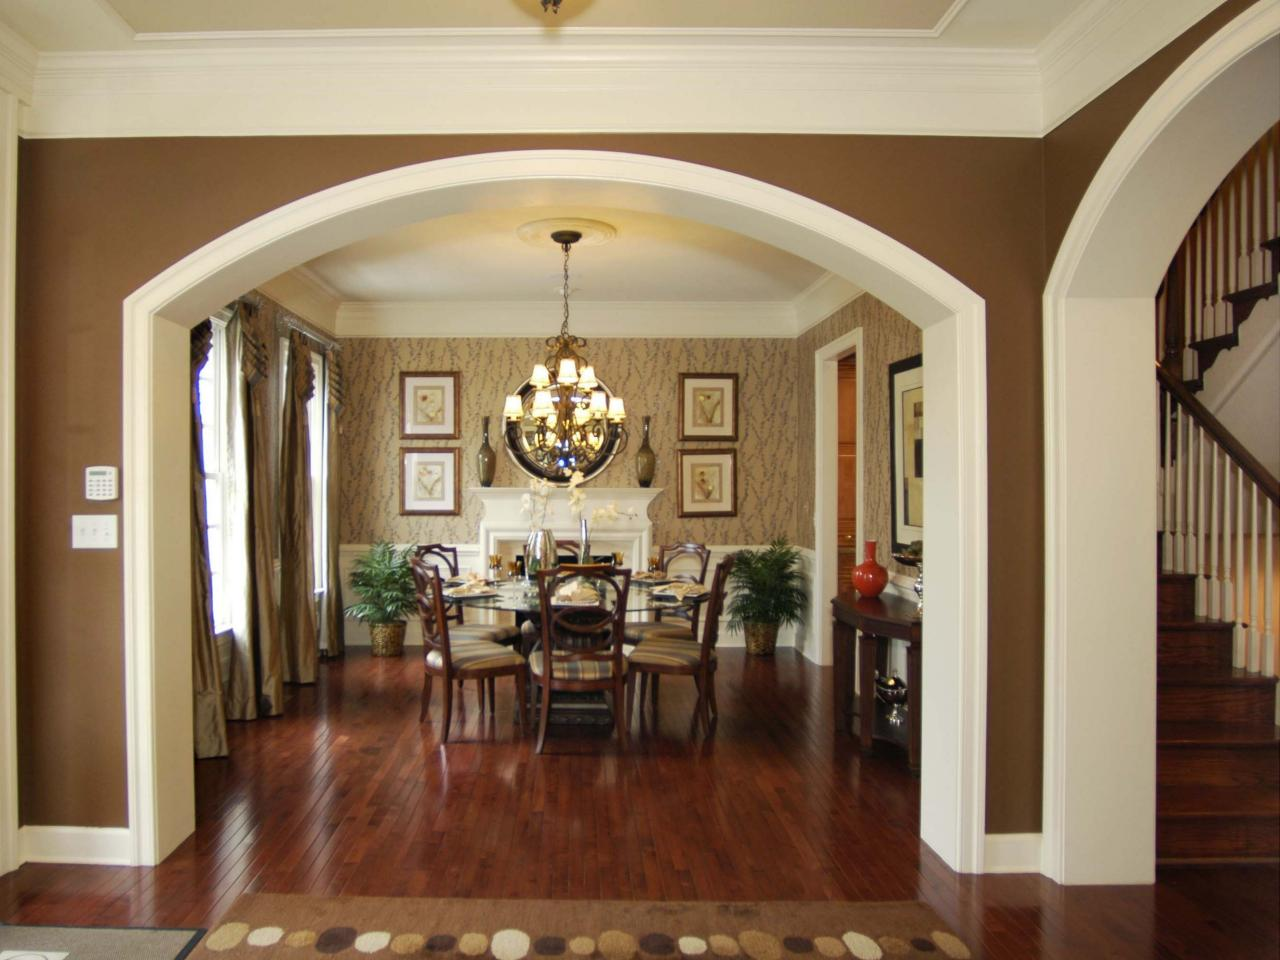 Photos HGTV : DesignLensdining archways4x3jpgrendhgtvcom1280960 from photos.hgtv.com size 1280 x 960 jpeg 121kB